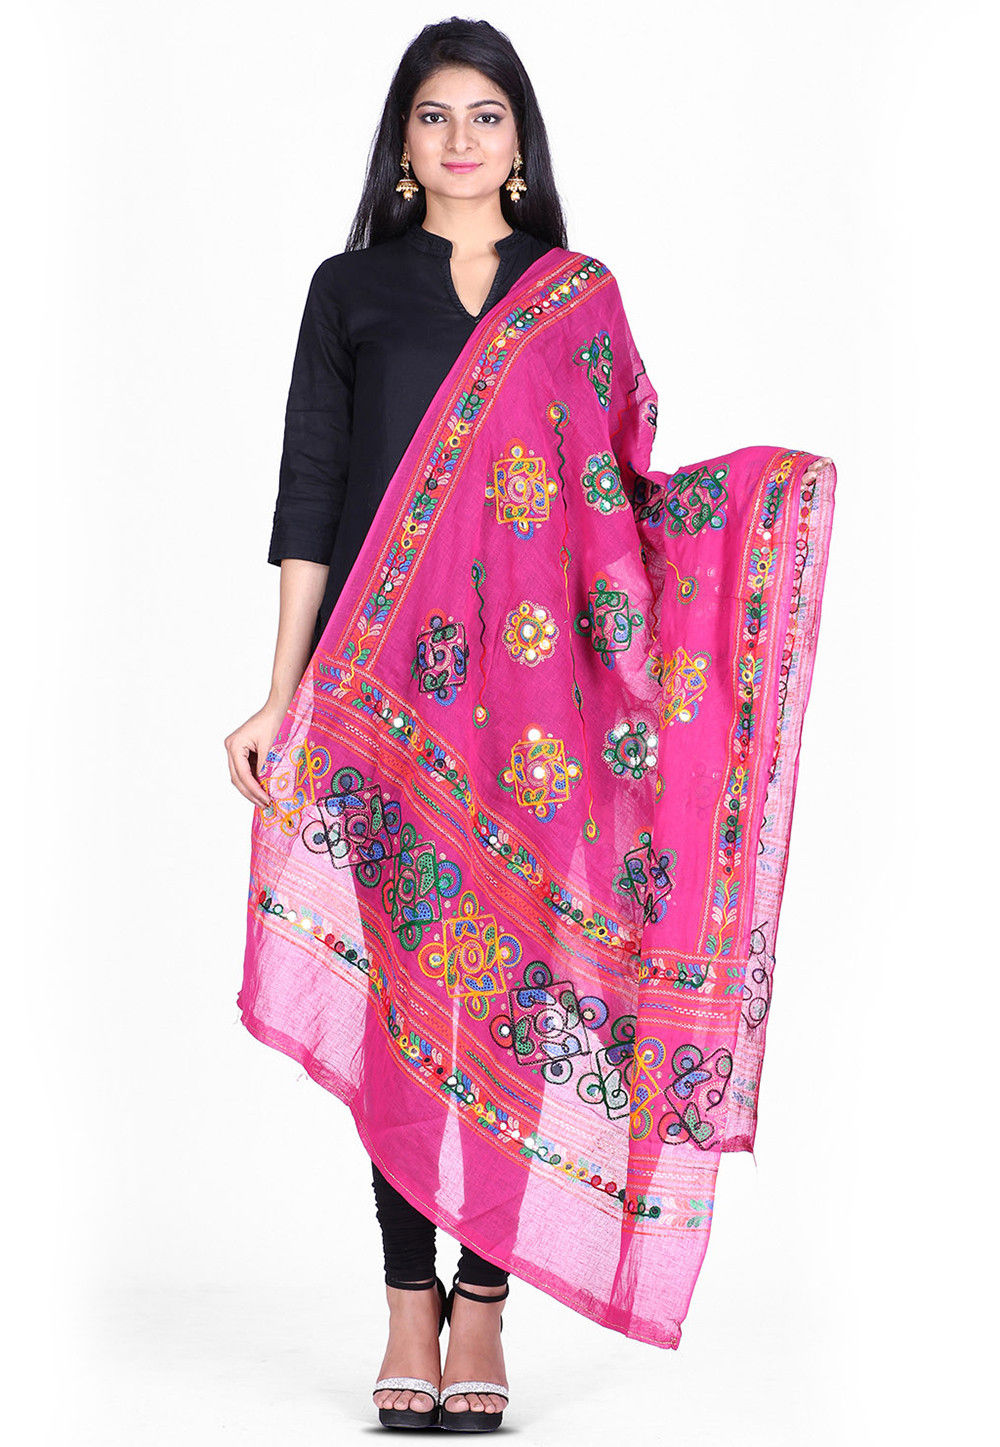 Kantha Embroidered Cotton Dupatta in Pink